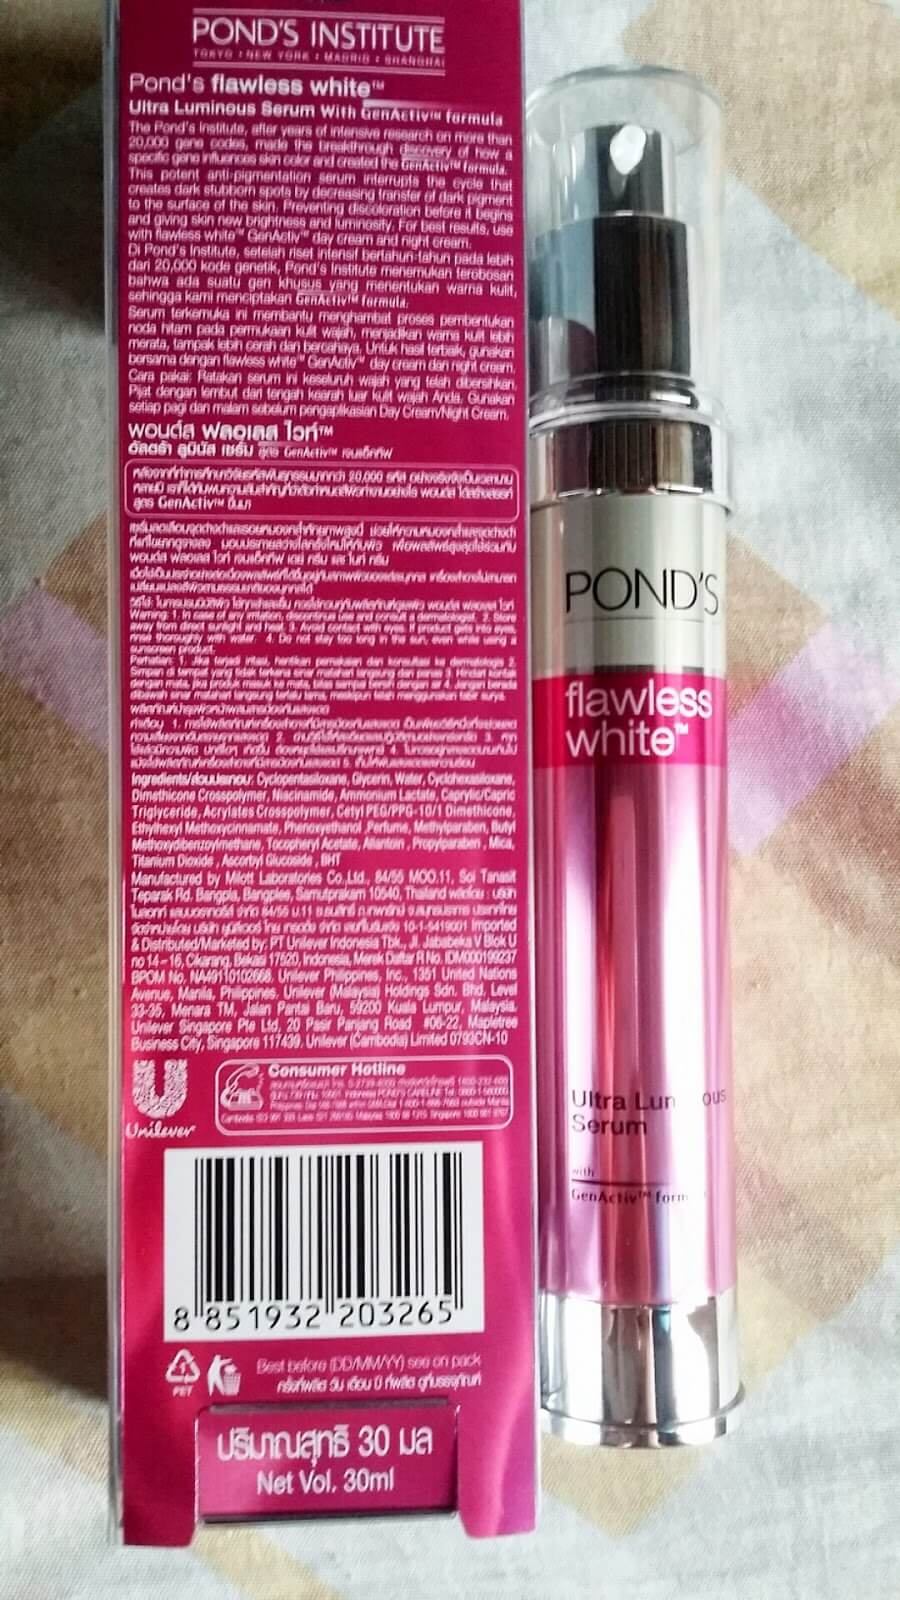 tinh-chat-pond-skincare-ultra-luminous-serum-02